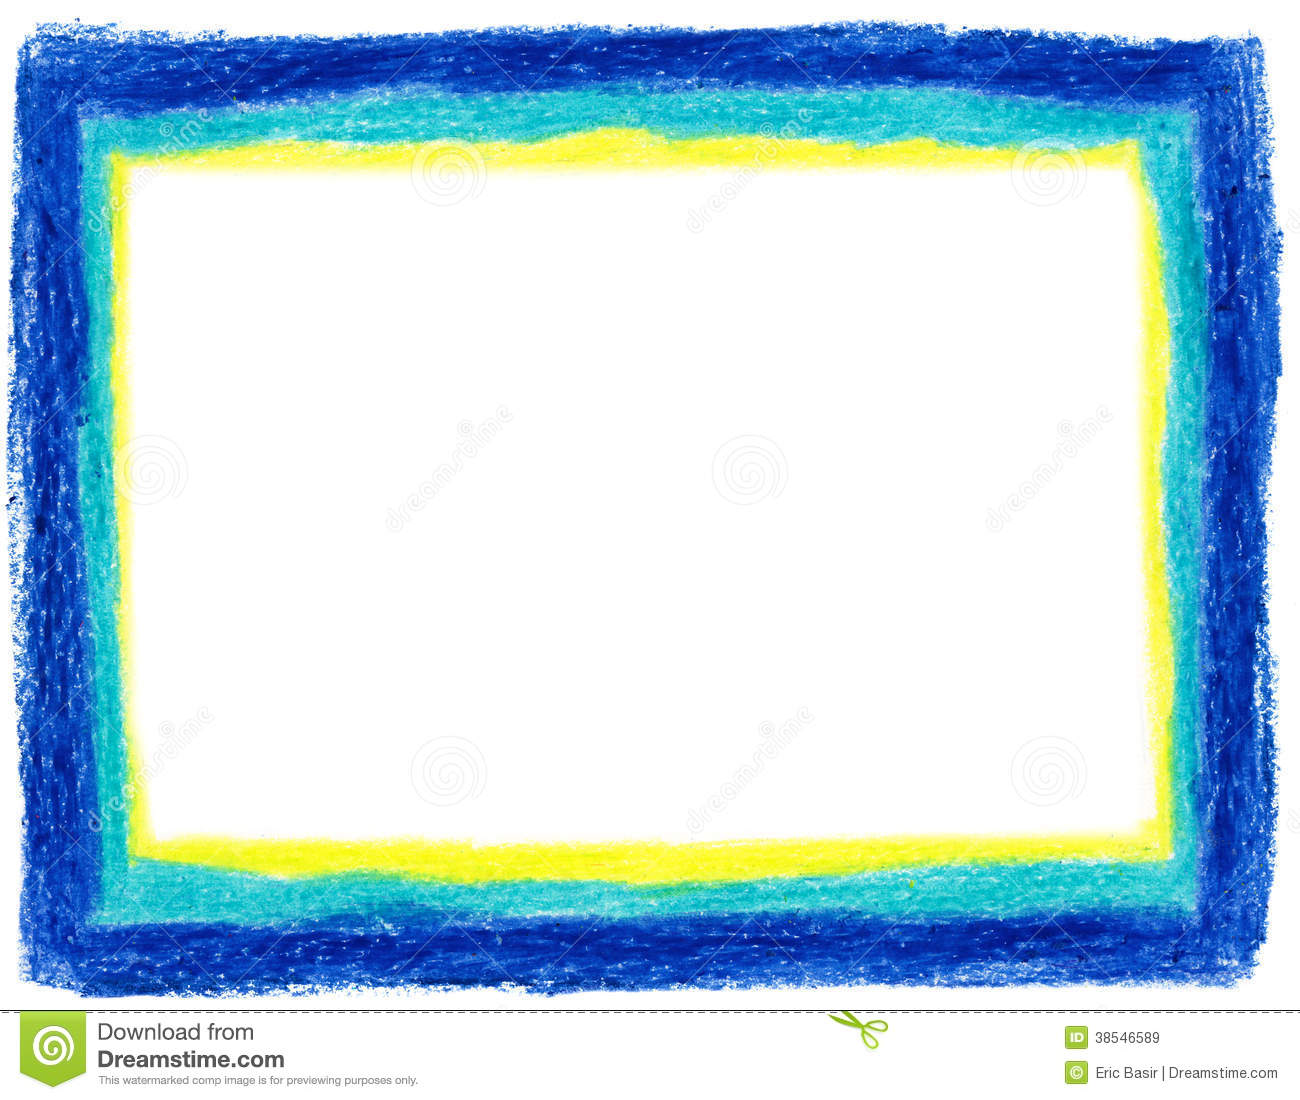 Blue and yellow crayon frame stock illustration - Marco de fotos multiple ...